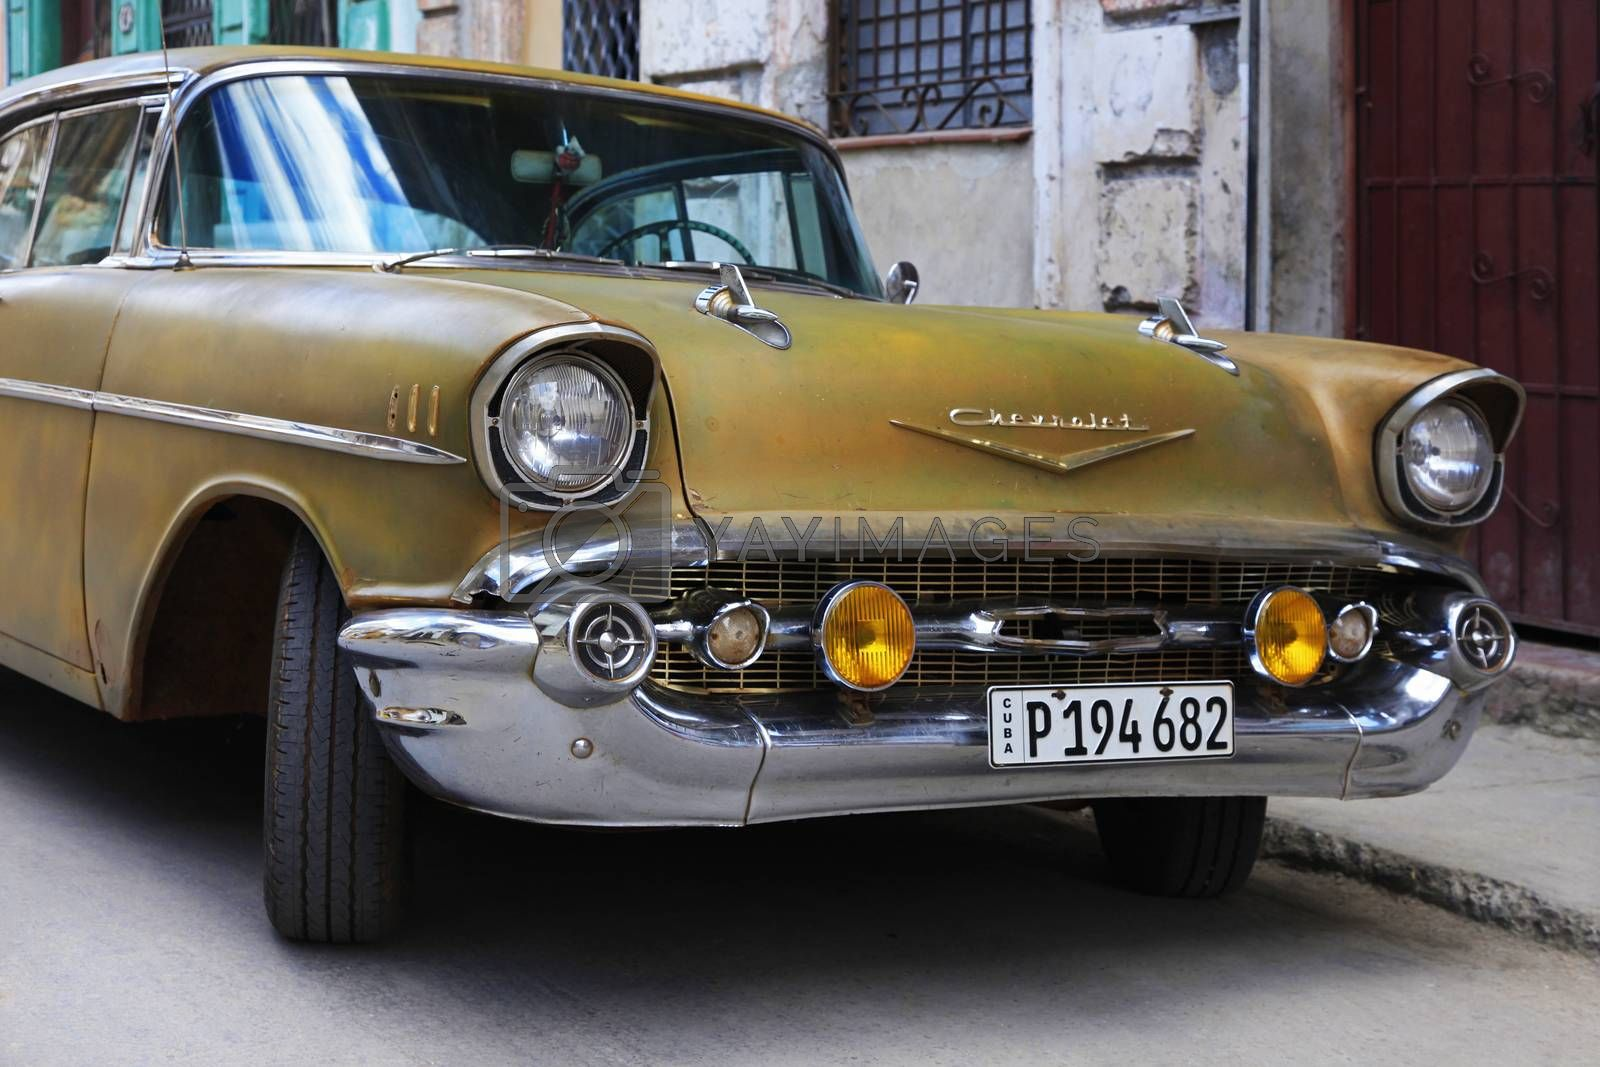 Havana, Сuba - January 11, 2019: Vintage cars moving on the streets of colorful Havana. A great variety of old cars exist In Cuba. On the streets cars from the first half of the 20th century can be found in magnificent conditions, which takes back in history and make the old atmosphere of the cities.